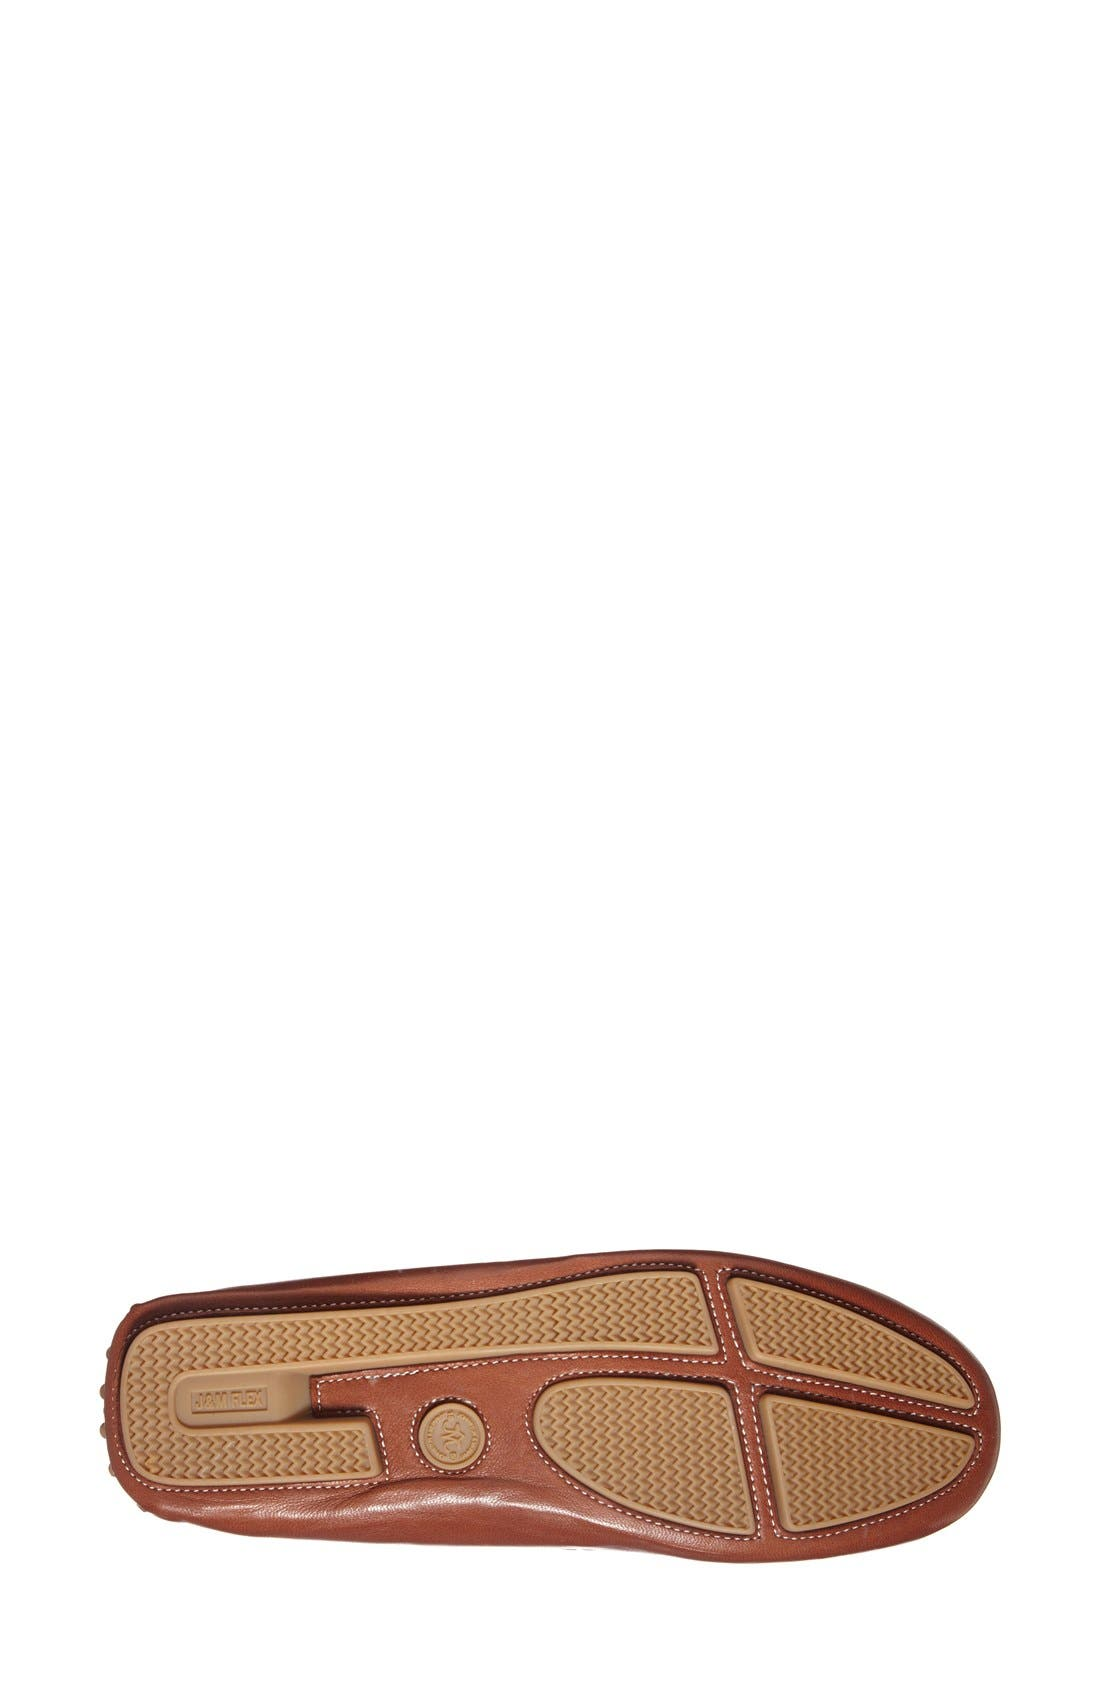 'Maggie' Moccasin,                             Alternate thumbnail 6, color,                             741